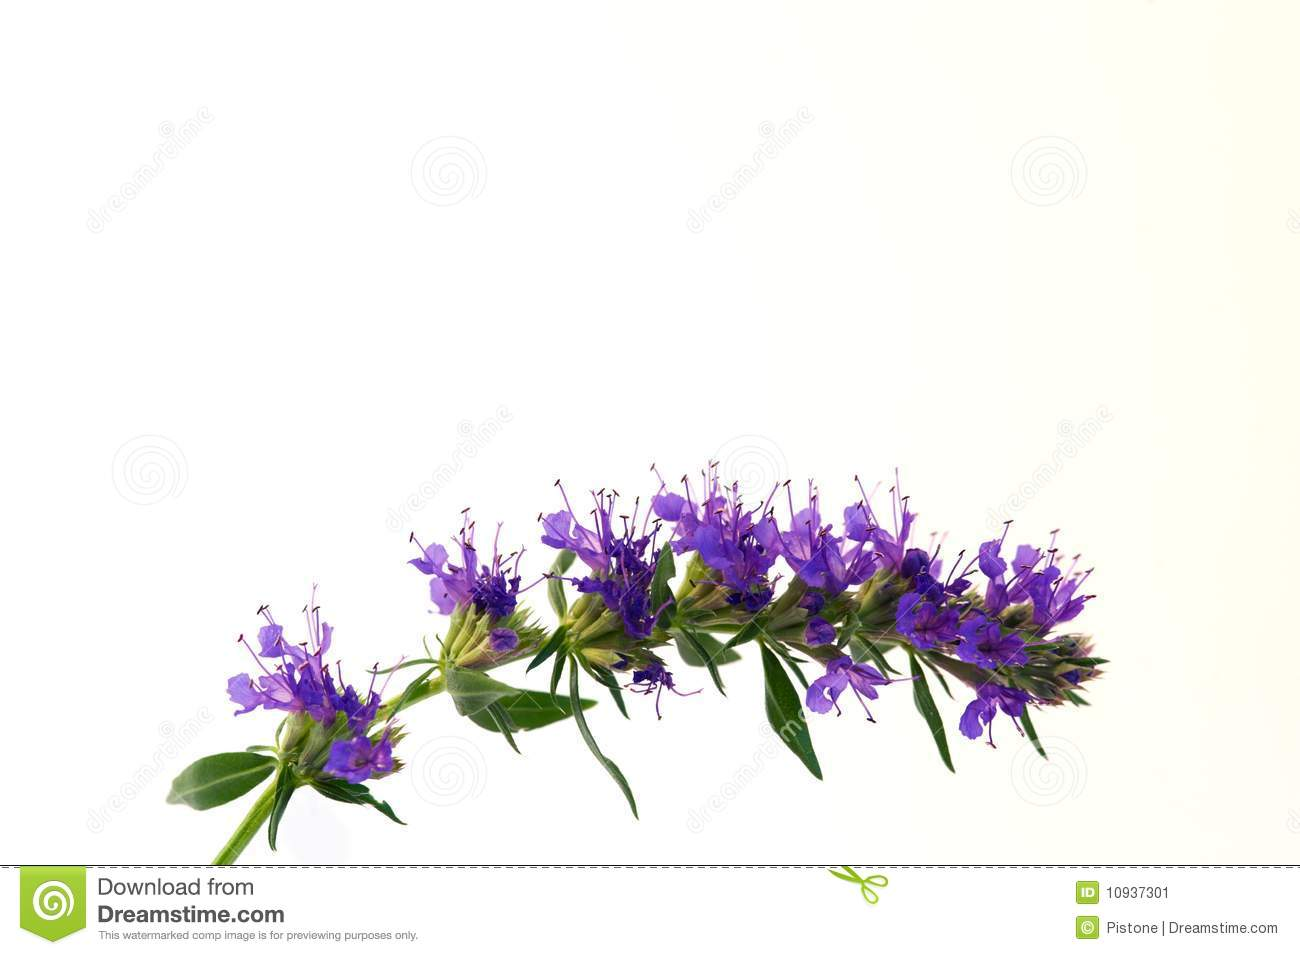 Blue blossoms of Hyssop